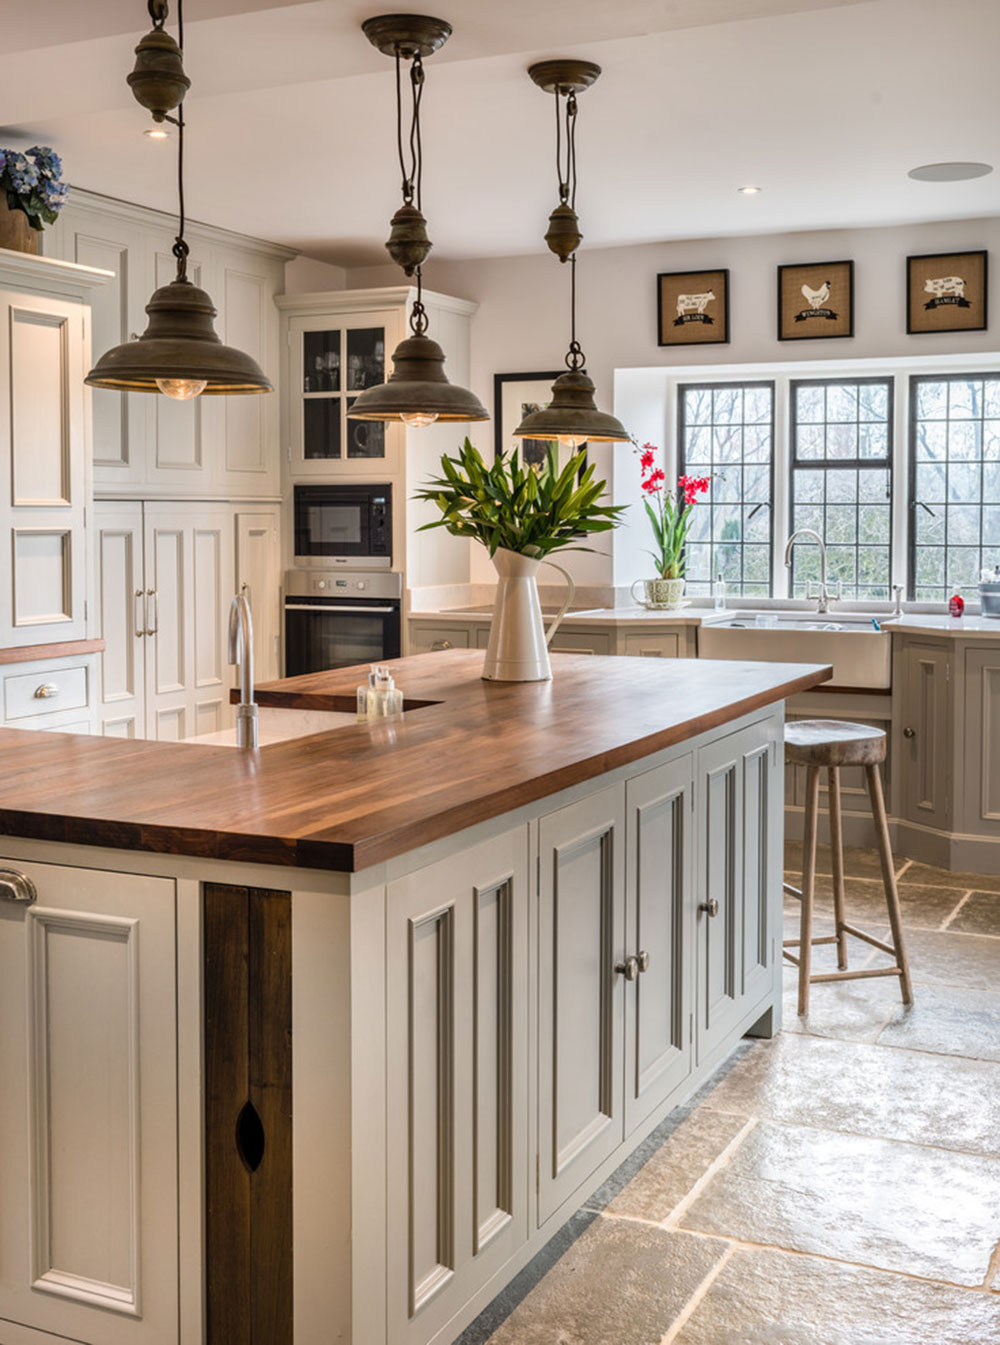 Choosing good kitchen furniture could be a challenge1-1 Choosing good kitchen furniture could be a challenge